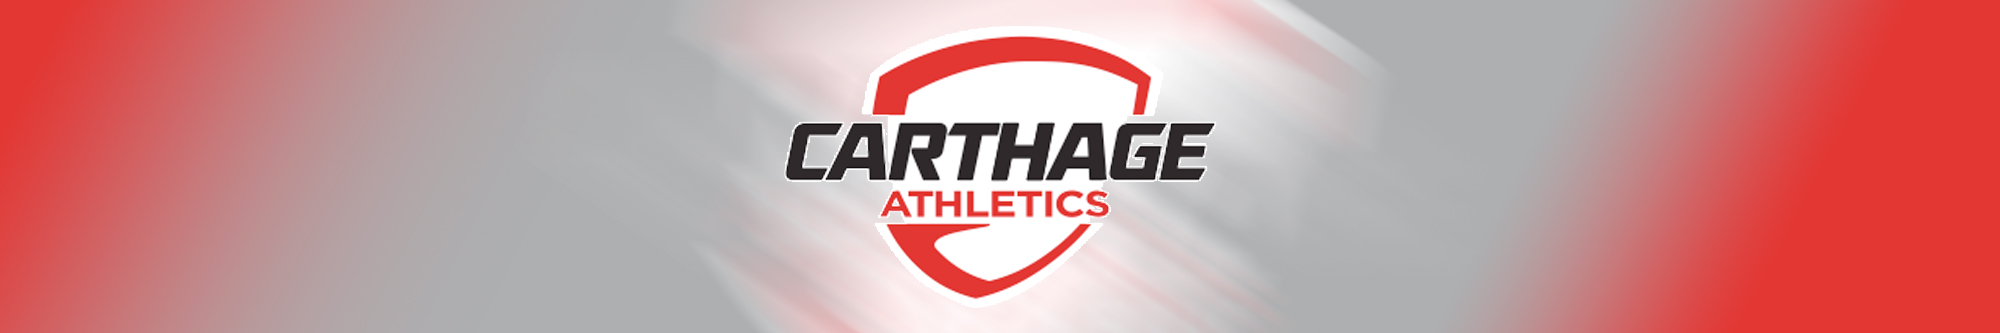 carthage-lacrosse-equipment-store